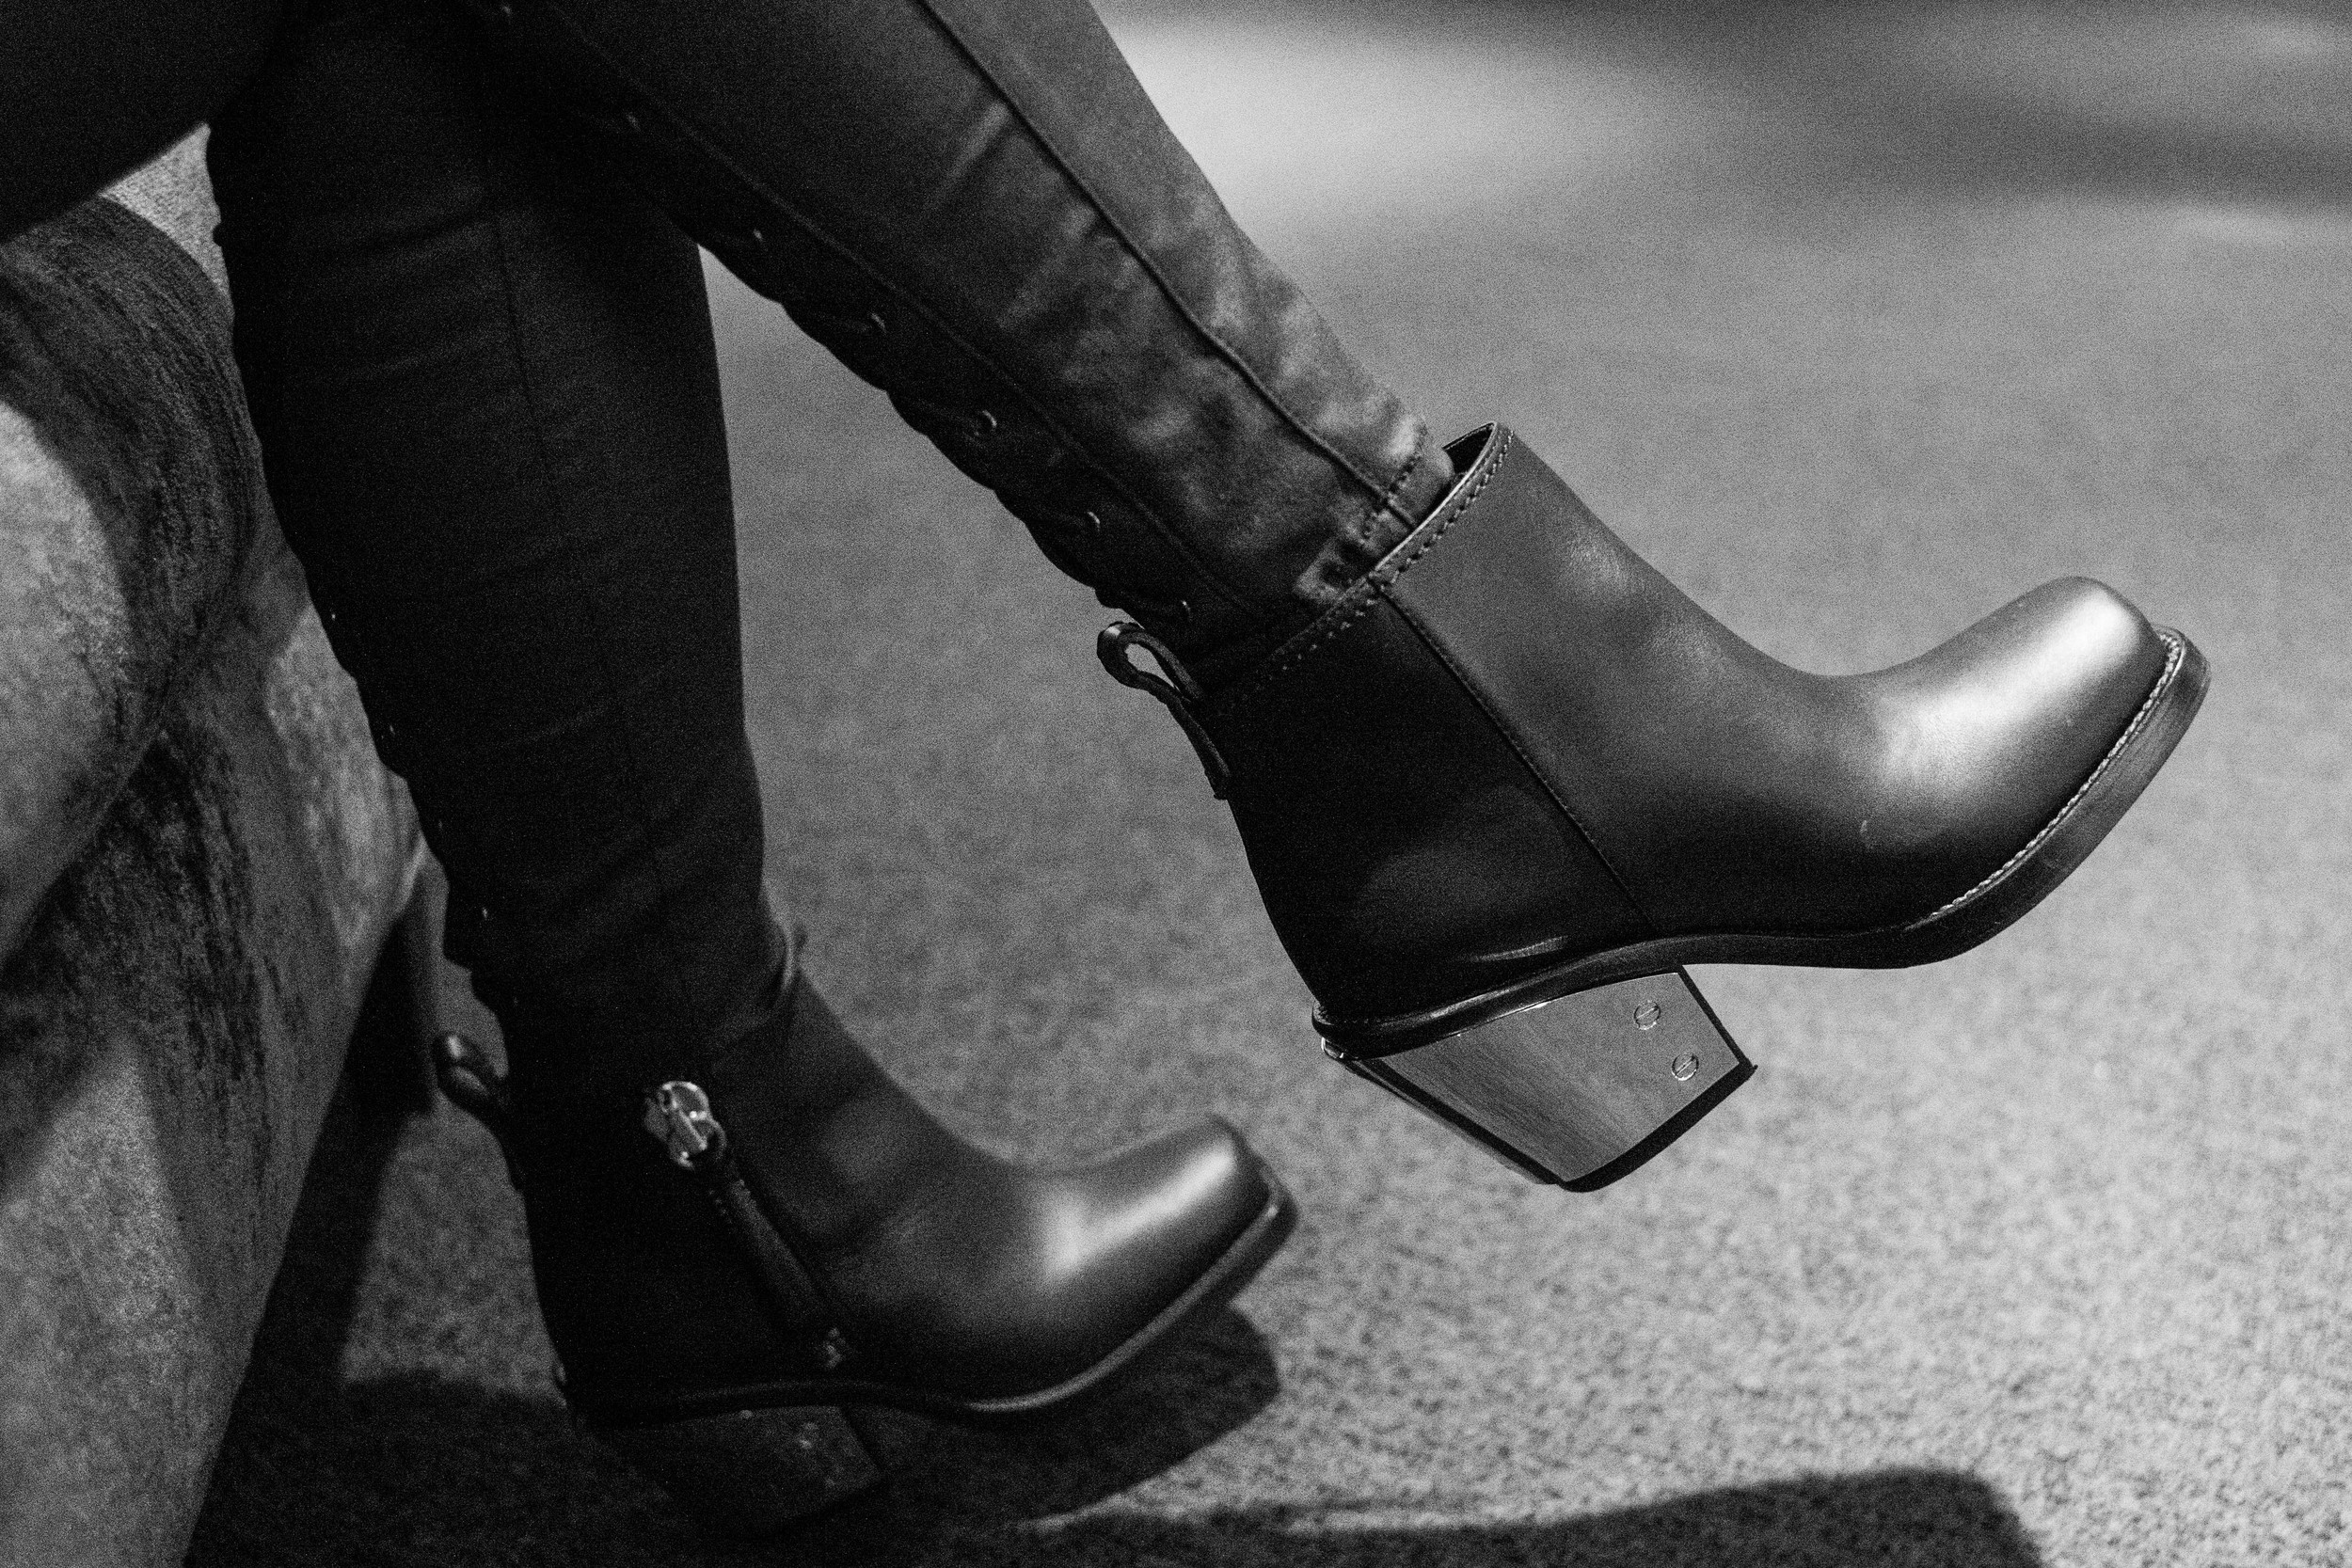 This must be art. It's a deliberate close up of someone's designer ankle boots.